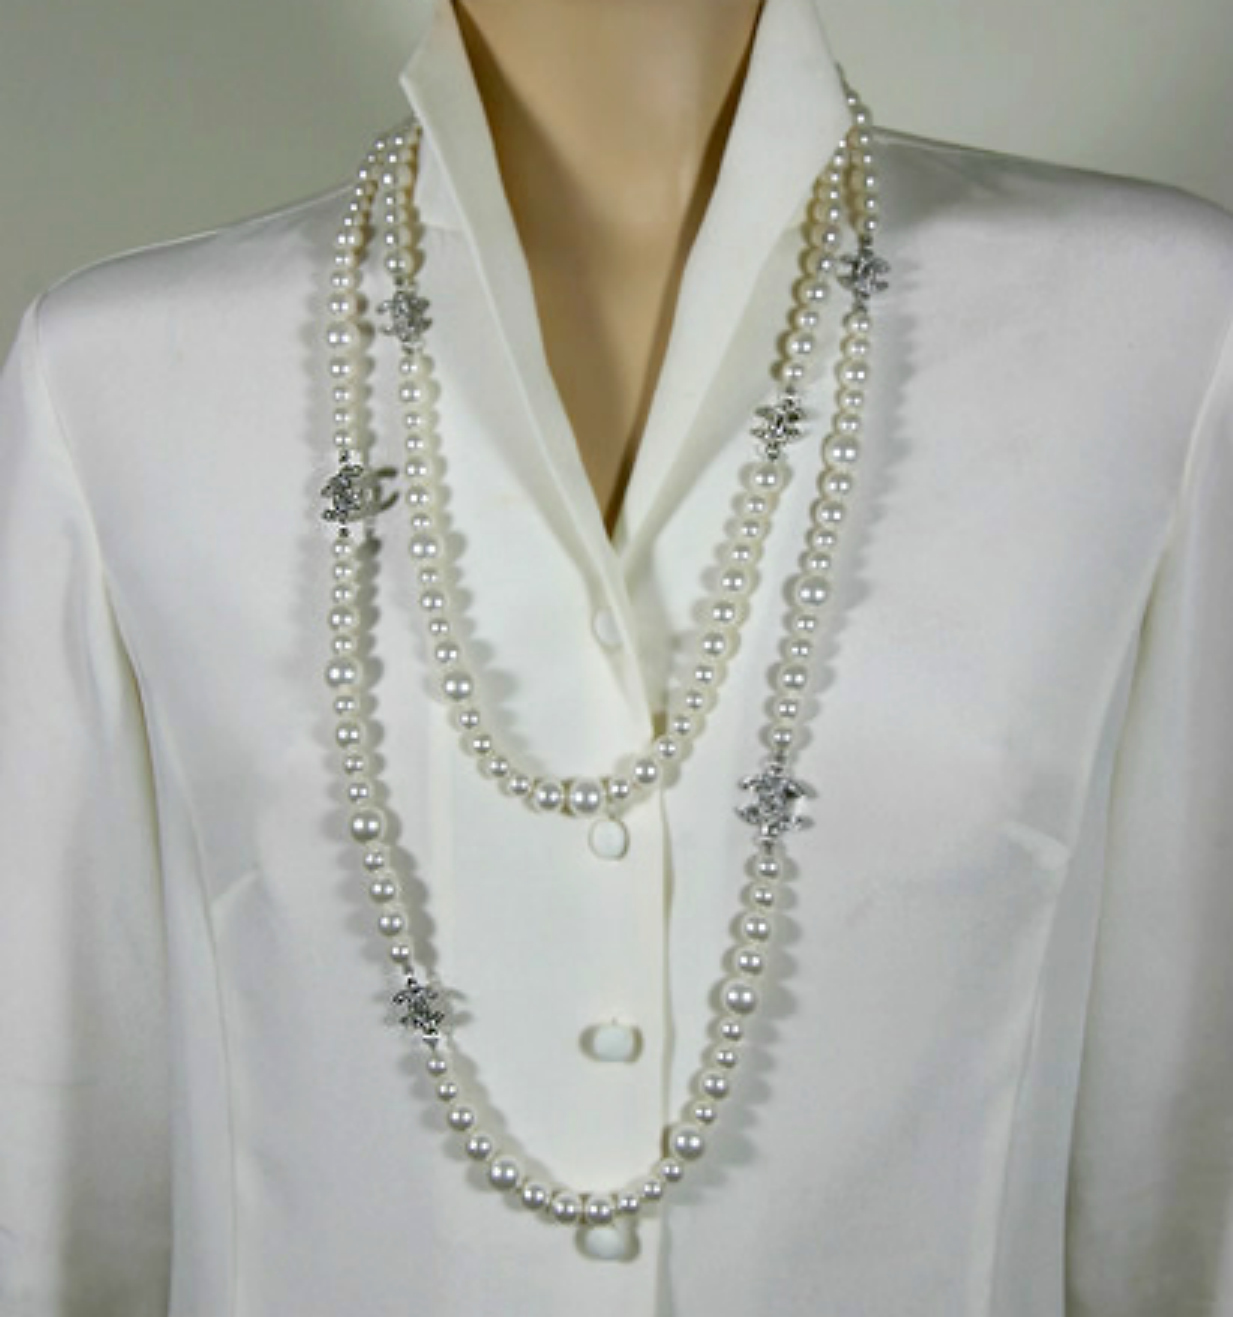 Necklace39l zpsdbb2e3d9